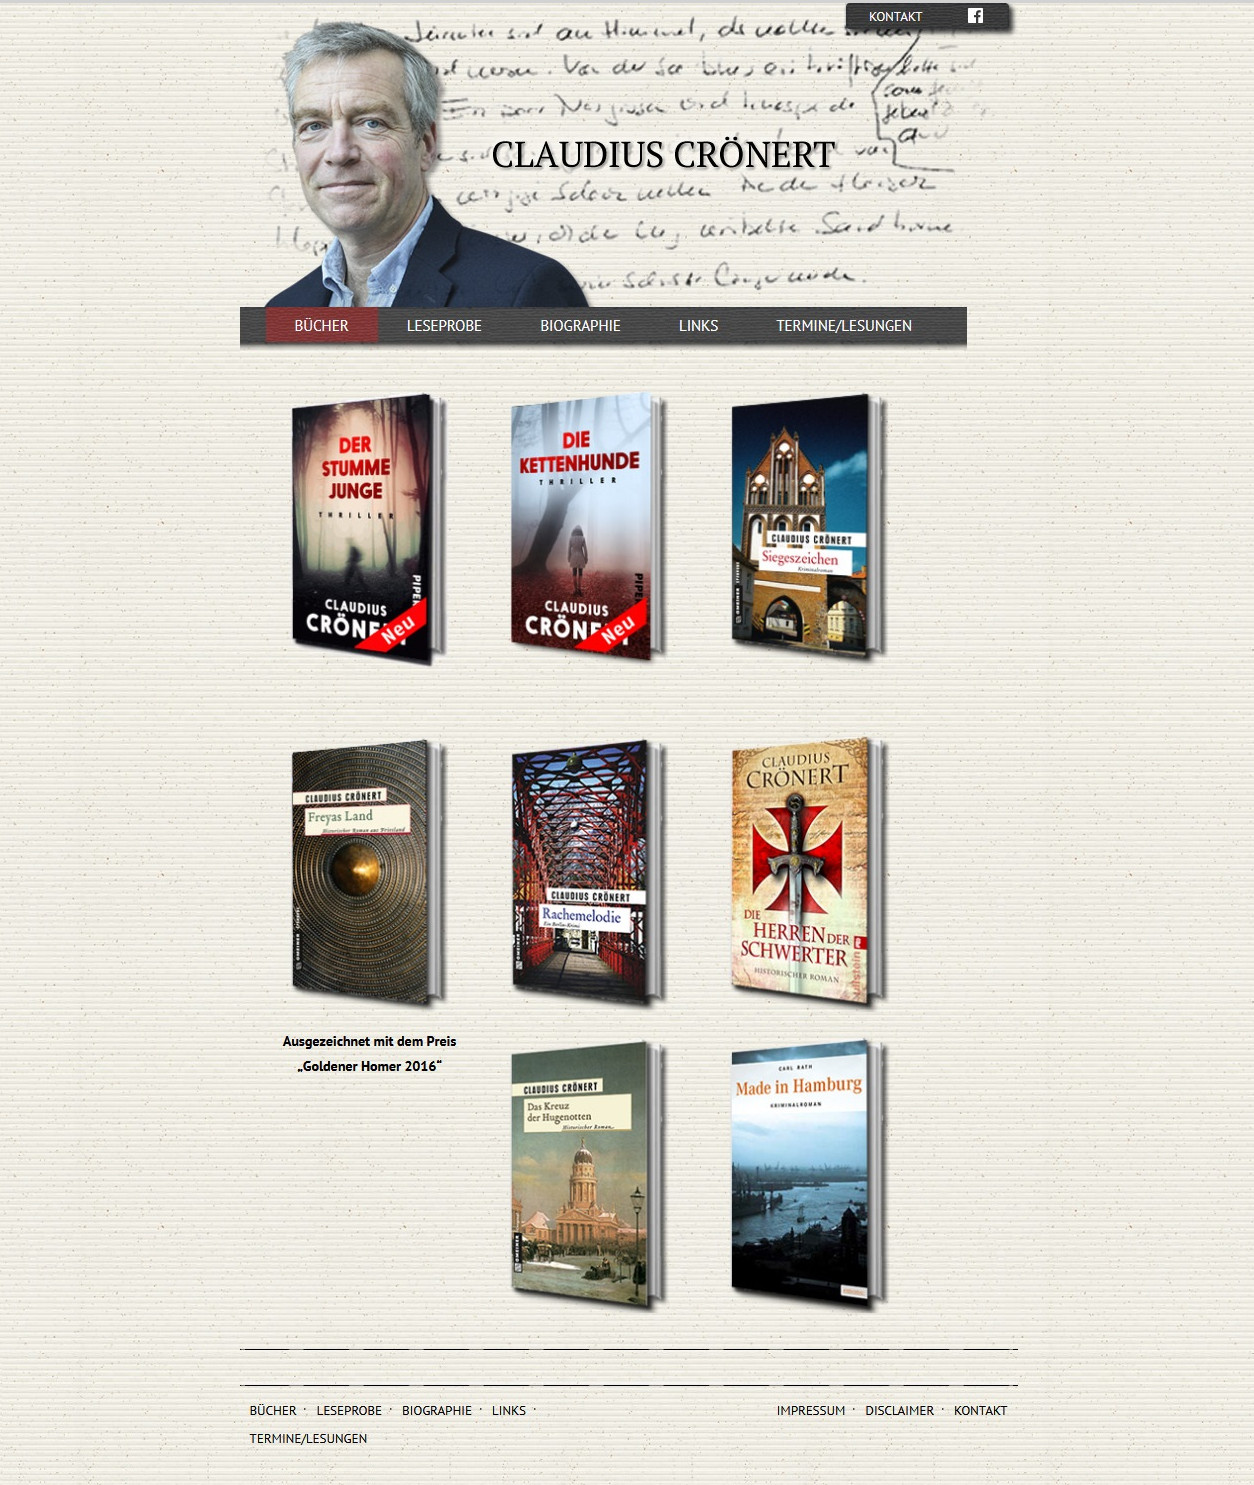 Claudius-Croenert Website Homepage